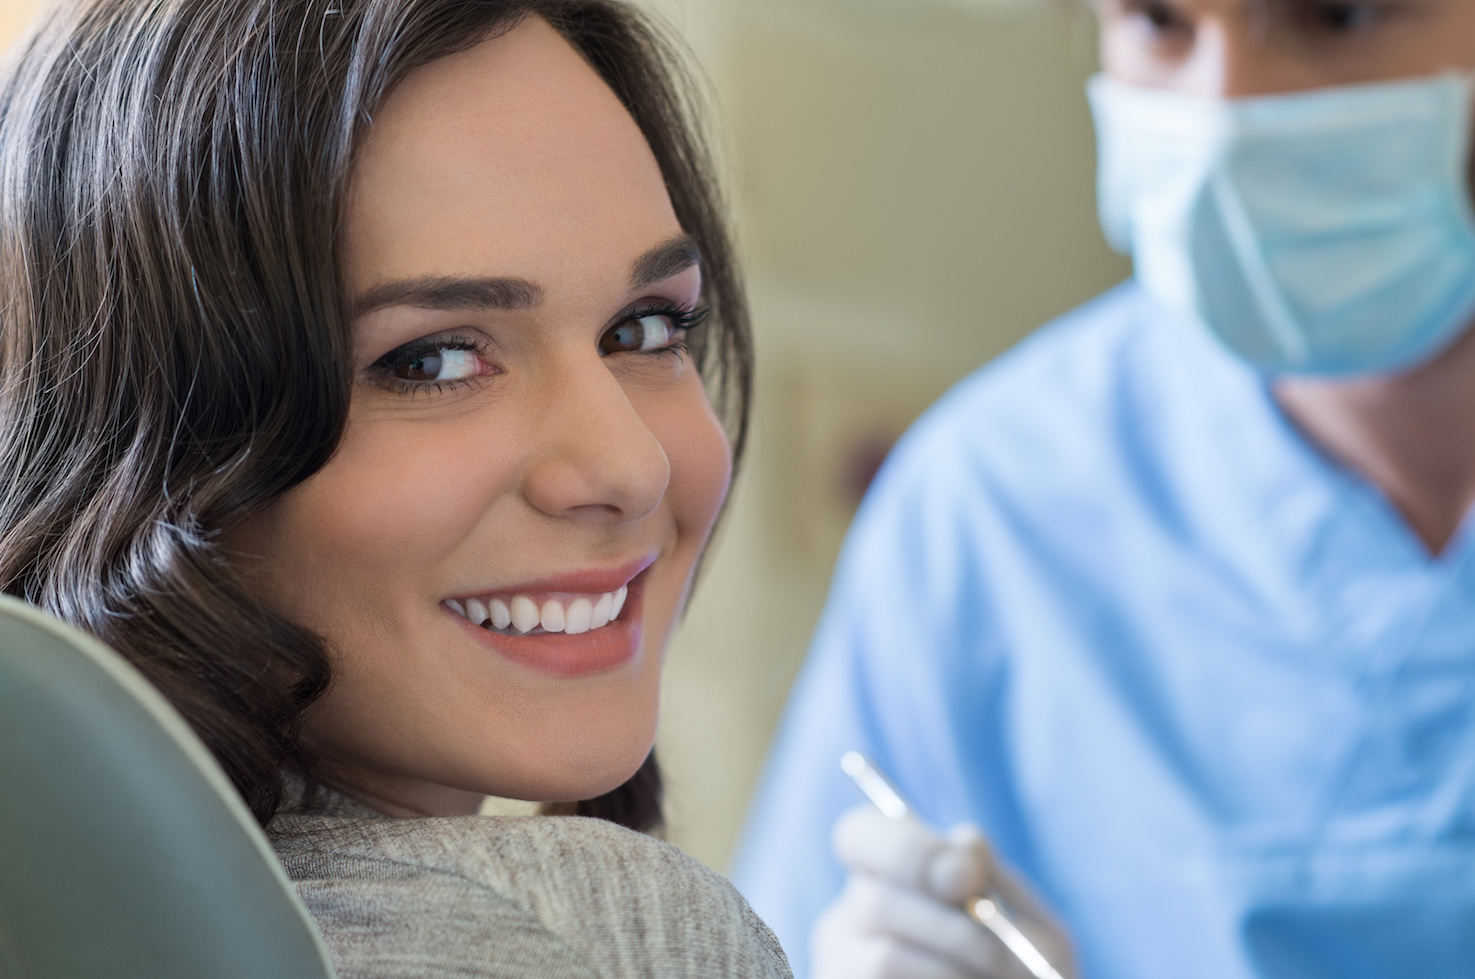 Best dentist for cavities in Billings, Montana. Restorative dentistry at Haslam Family Dental